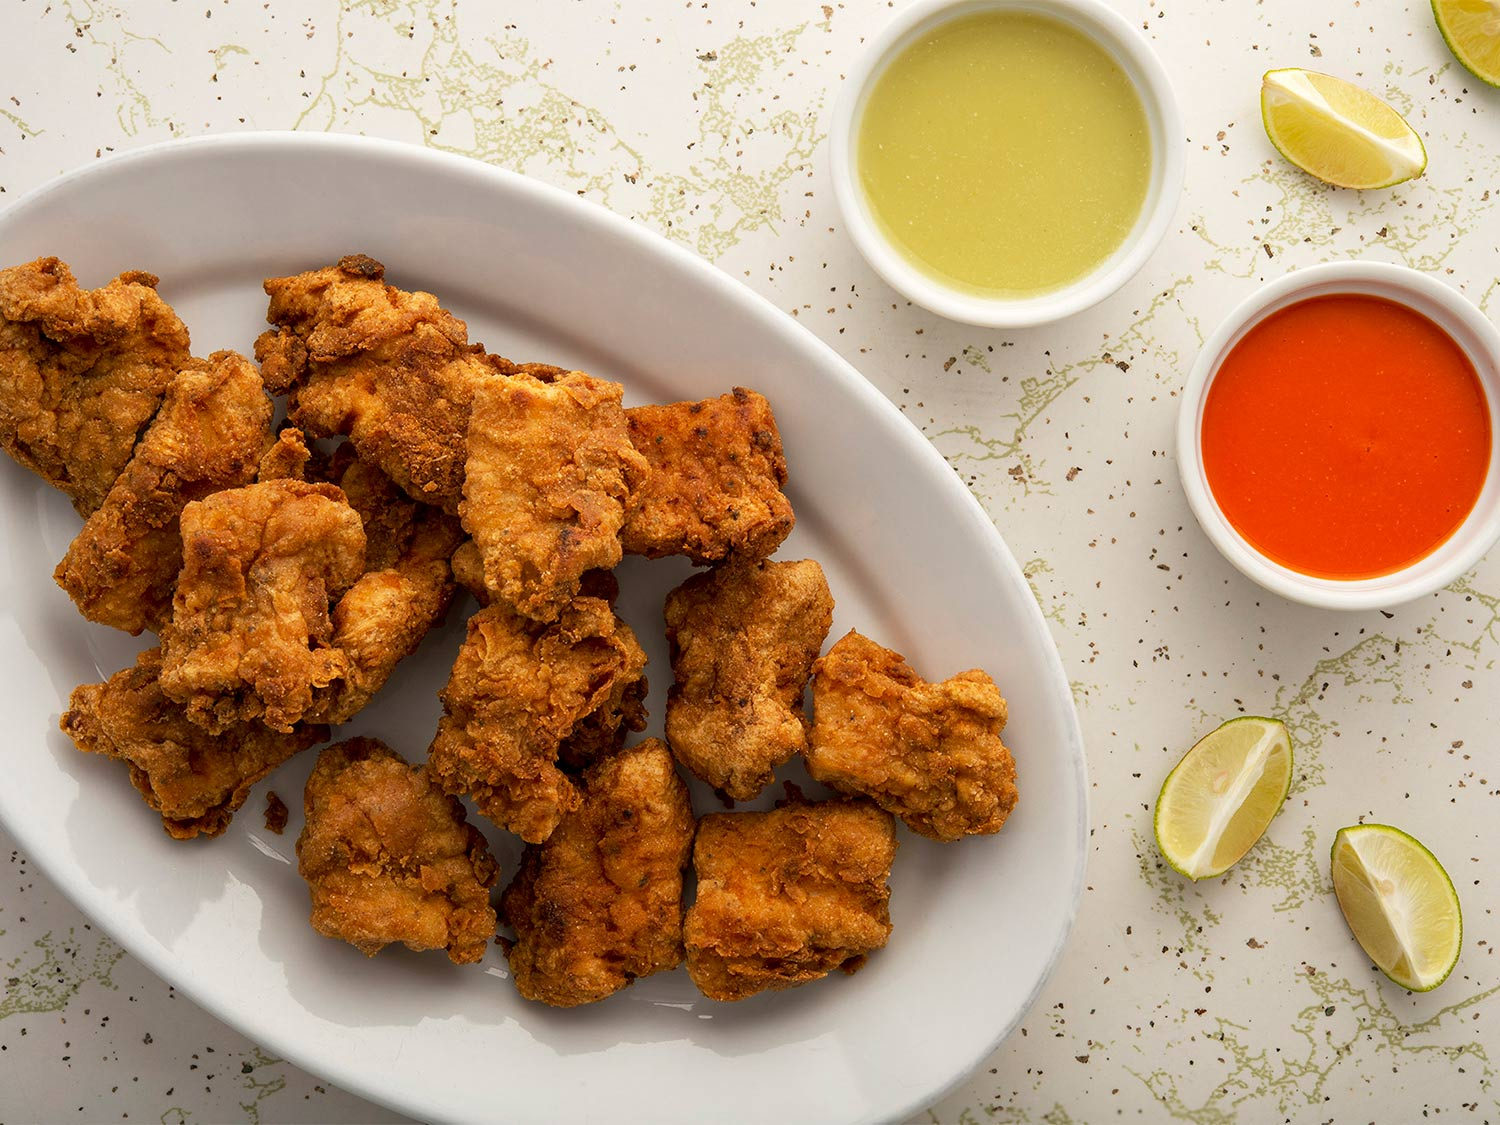 Nuggets of fried bass served with lemon and sauces.